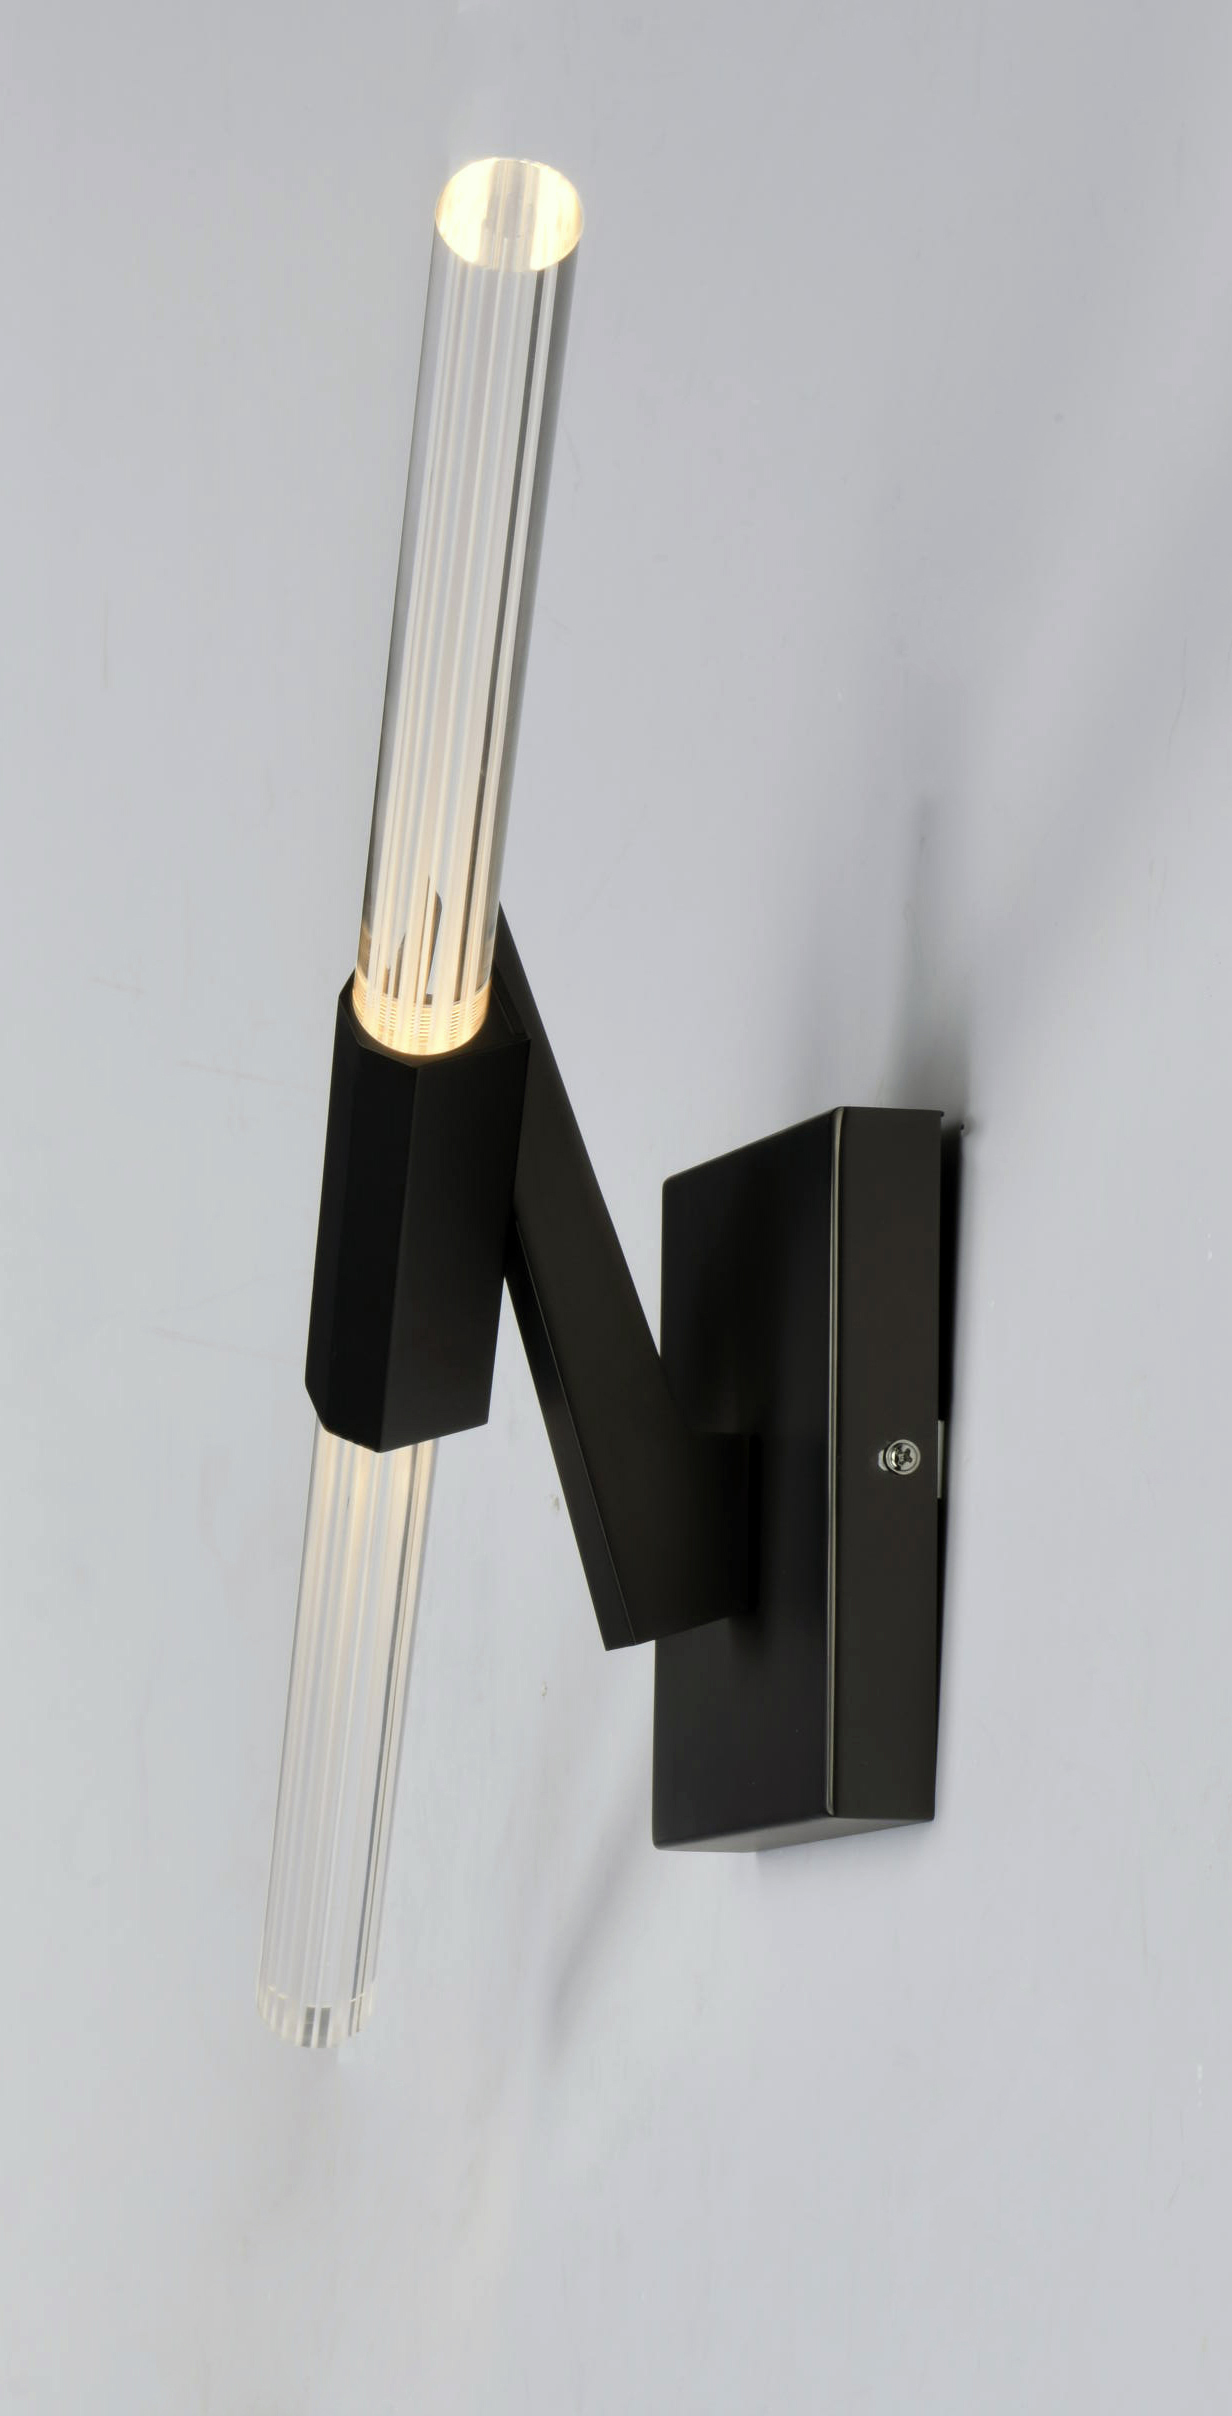 Lightsaber Wall Sconce - Wars Lightsaber Room Light Wall Sconce Iwoot, The Lightsaber Wall ...